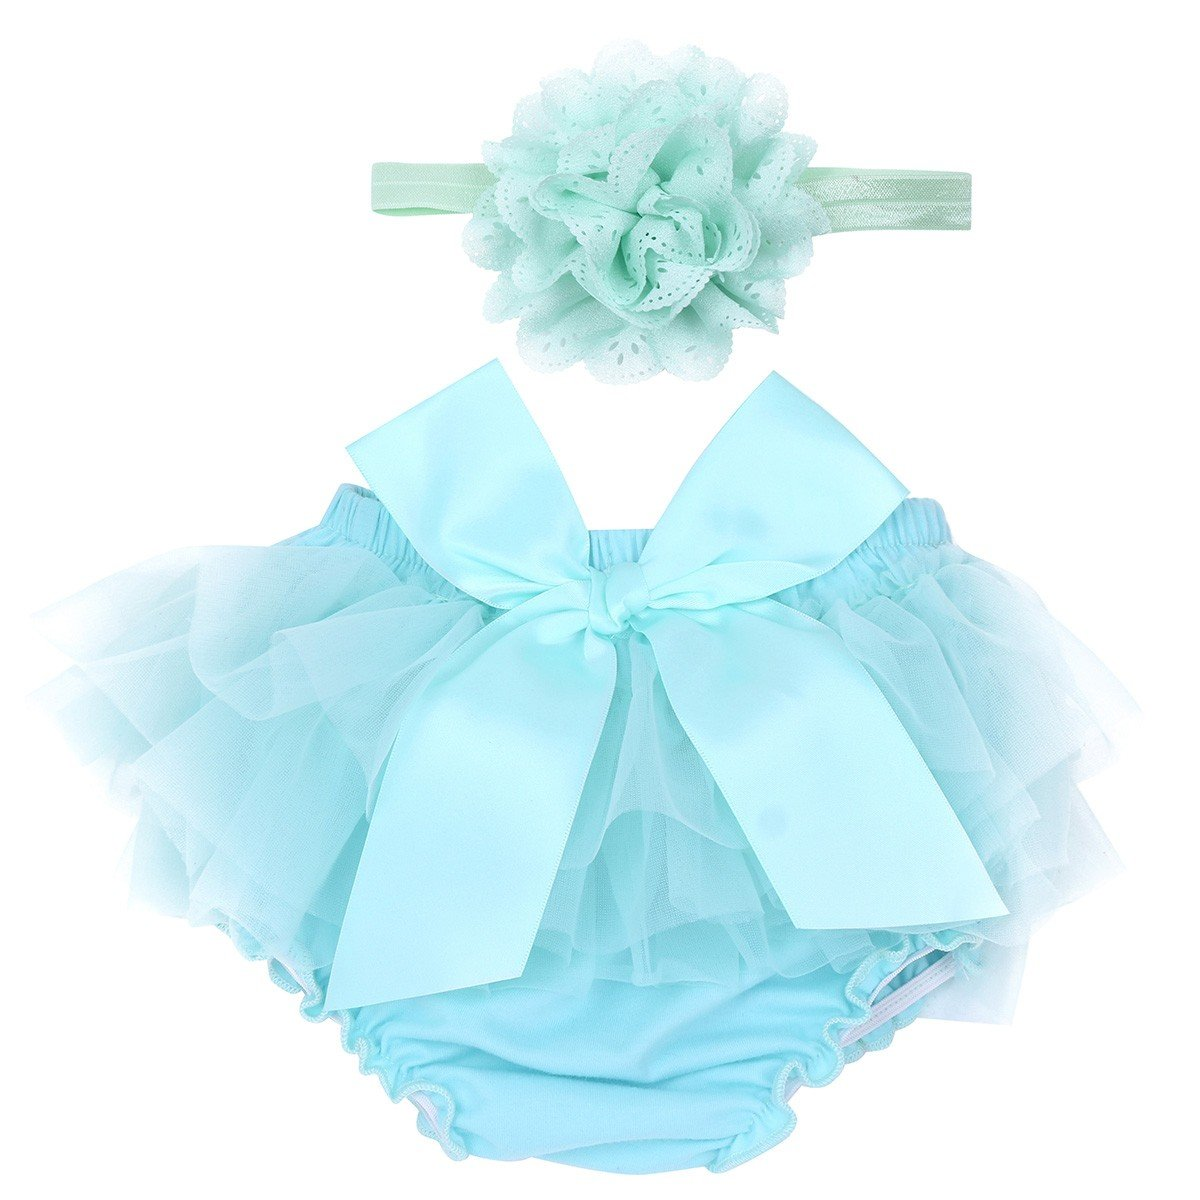 iEFiEL Newborn Baby Girls' Ruffle Bowknot Bloomers Skirt Diaper Cover with Flower Headband 2Pcs Photography Prop Costume